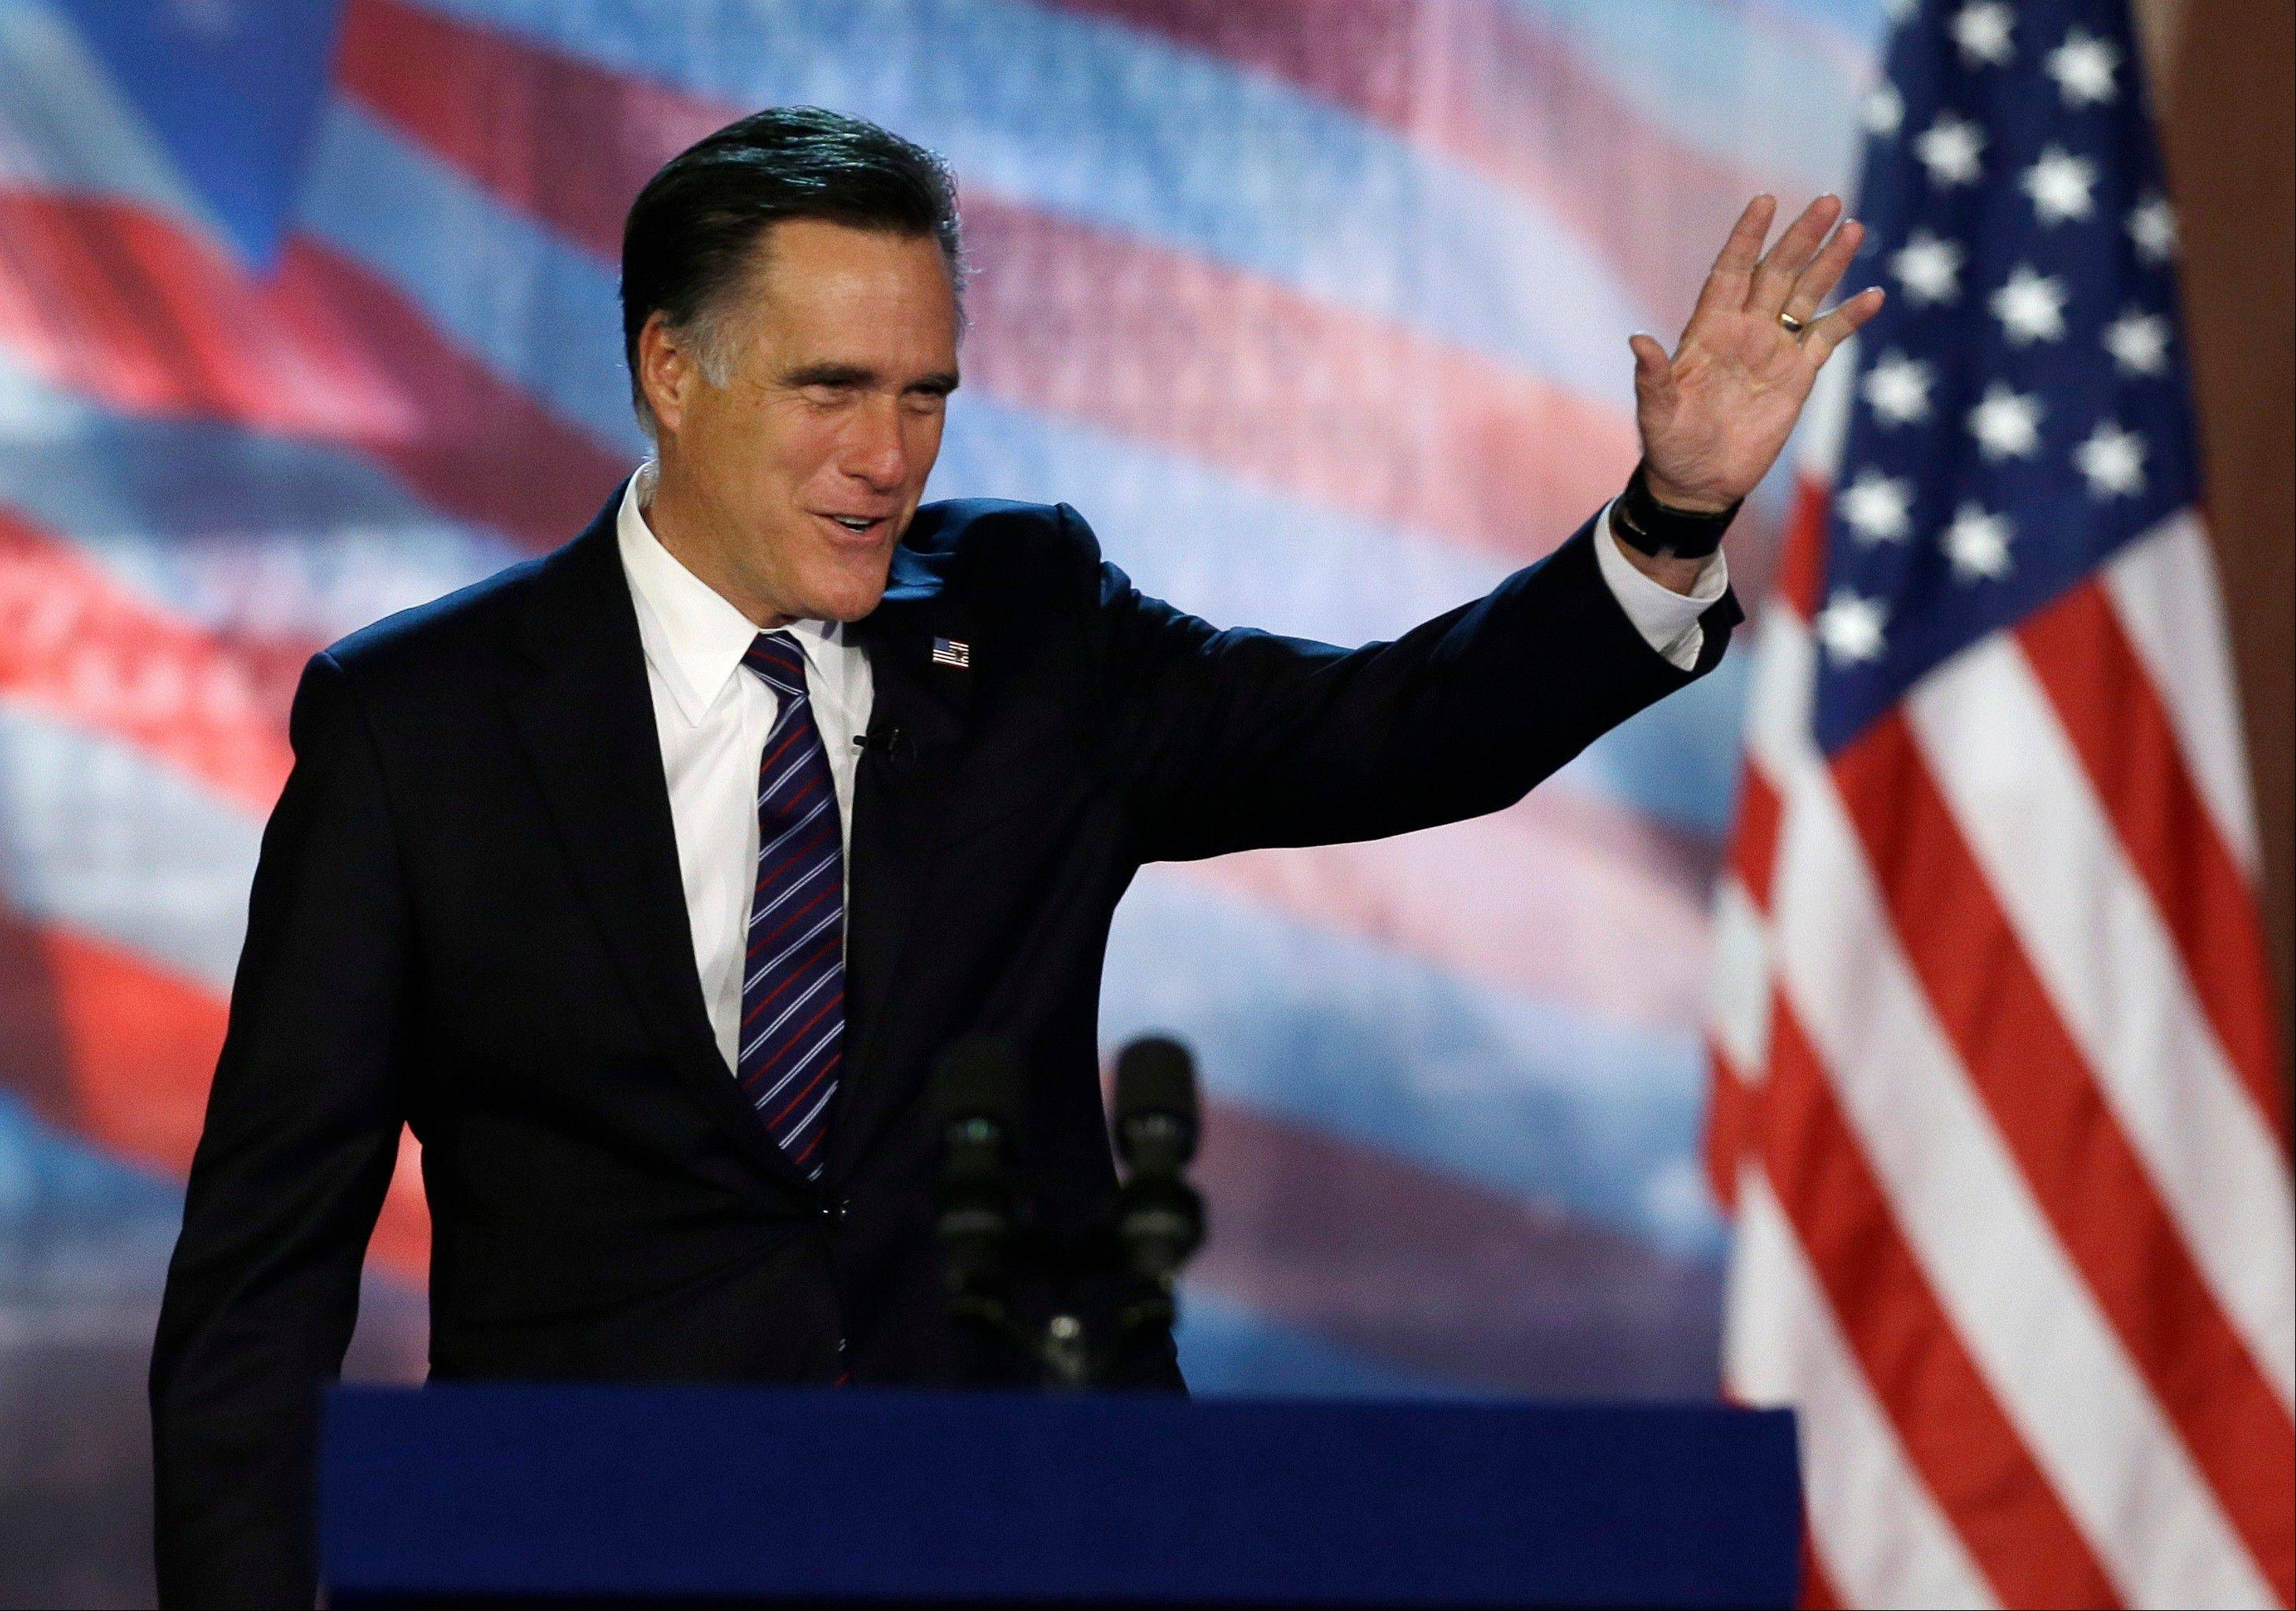 Republican presidential candidate and former Massachusetts Gov. Mitt Romney waves to supporters before conceding at his election night rally, Wednesday, Nov. 7, 2012, in Boston.